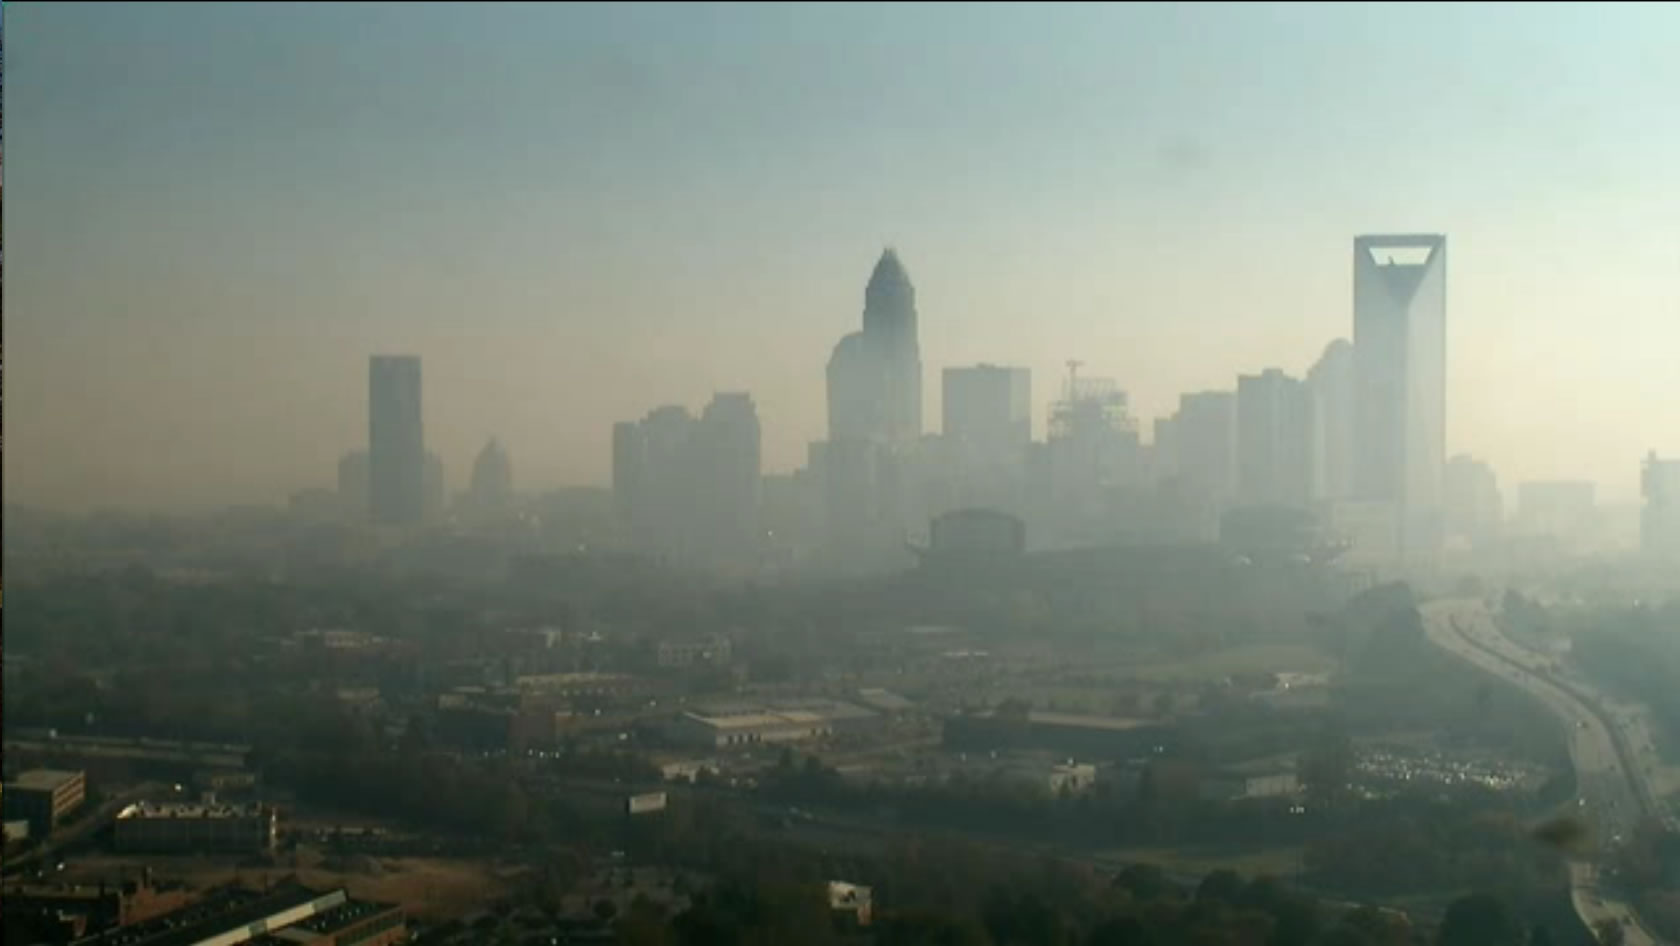 Image of Charlotte, North Carolina in November 2016 after smoke was transported from fires on the eastern NC Appalachian mountains.  Air Quality Index was red for a day, which is really rare.  Photo is from WBTV tower cam.